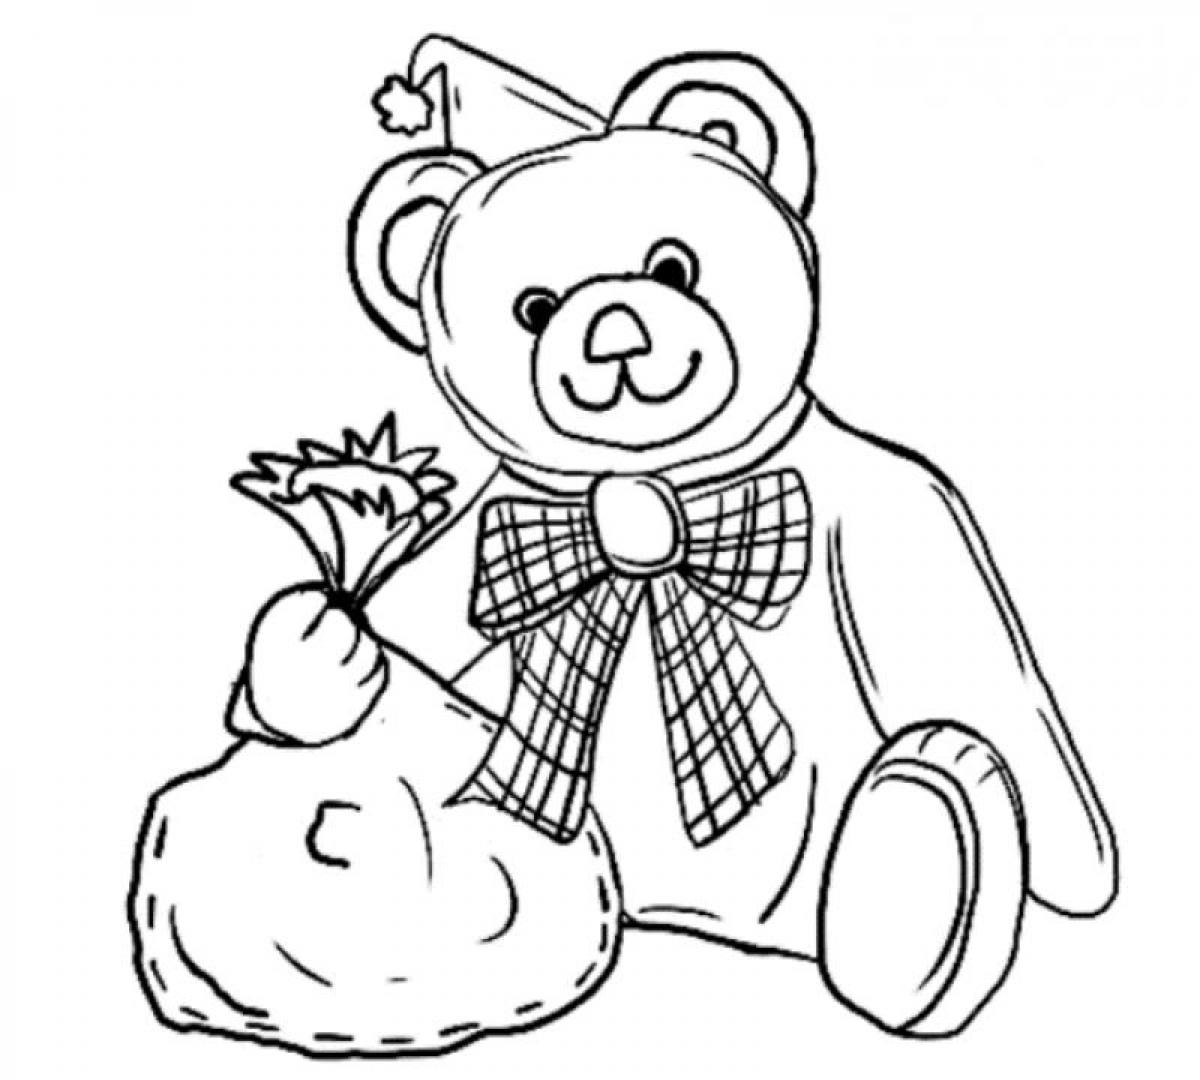 453 besides Moss Clipart as well Teddy Bear Coloring Pages together with Teddy Bear Coloring Pages also Ceiling Material T24 Painting Keel For 1256922036. on soft toys